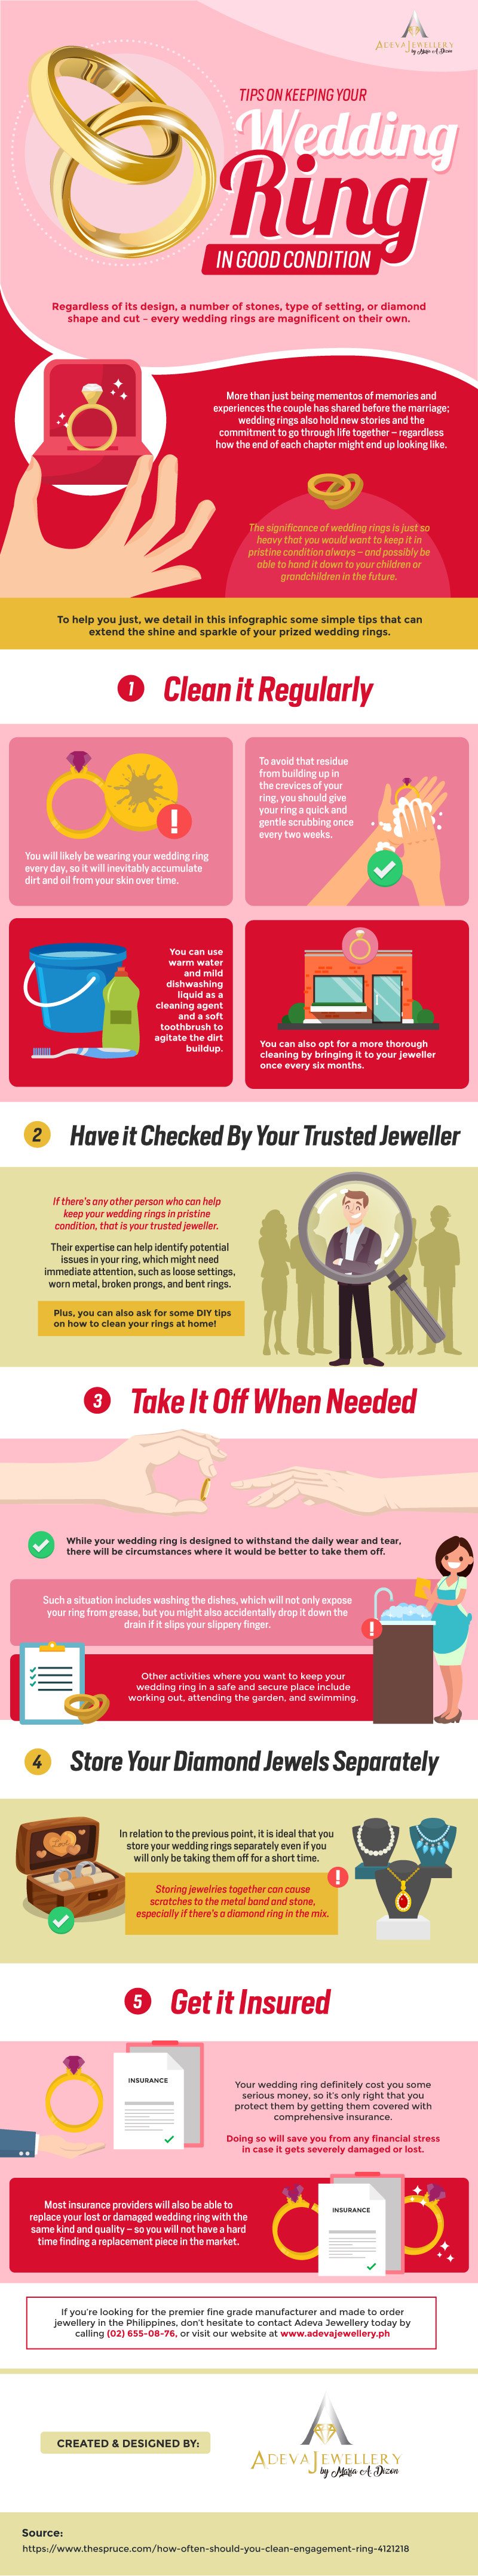 Tips on Keeping your Wedding Ring in Good Condition #infographic